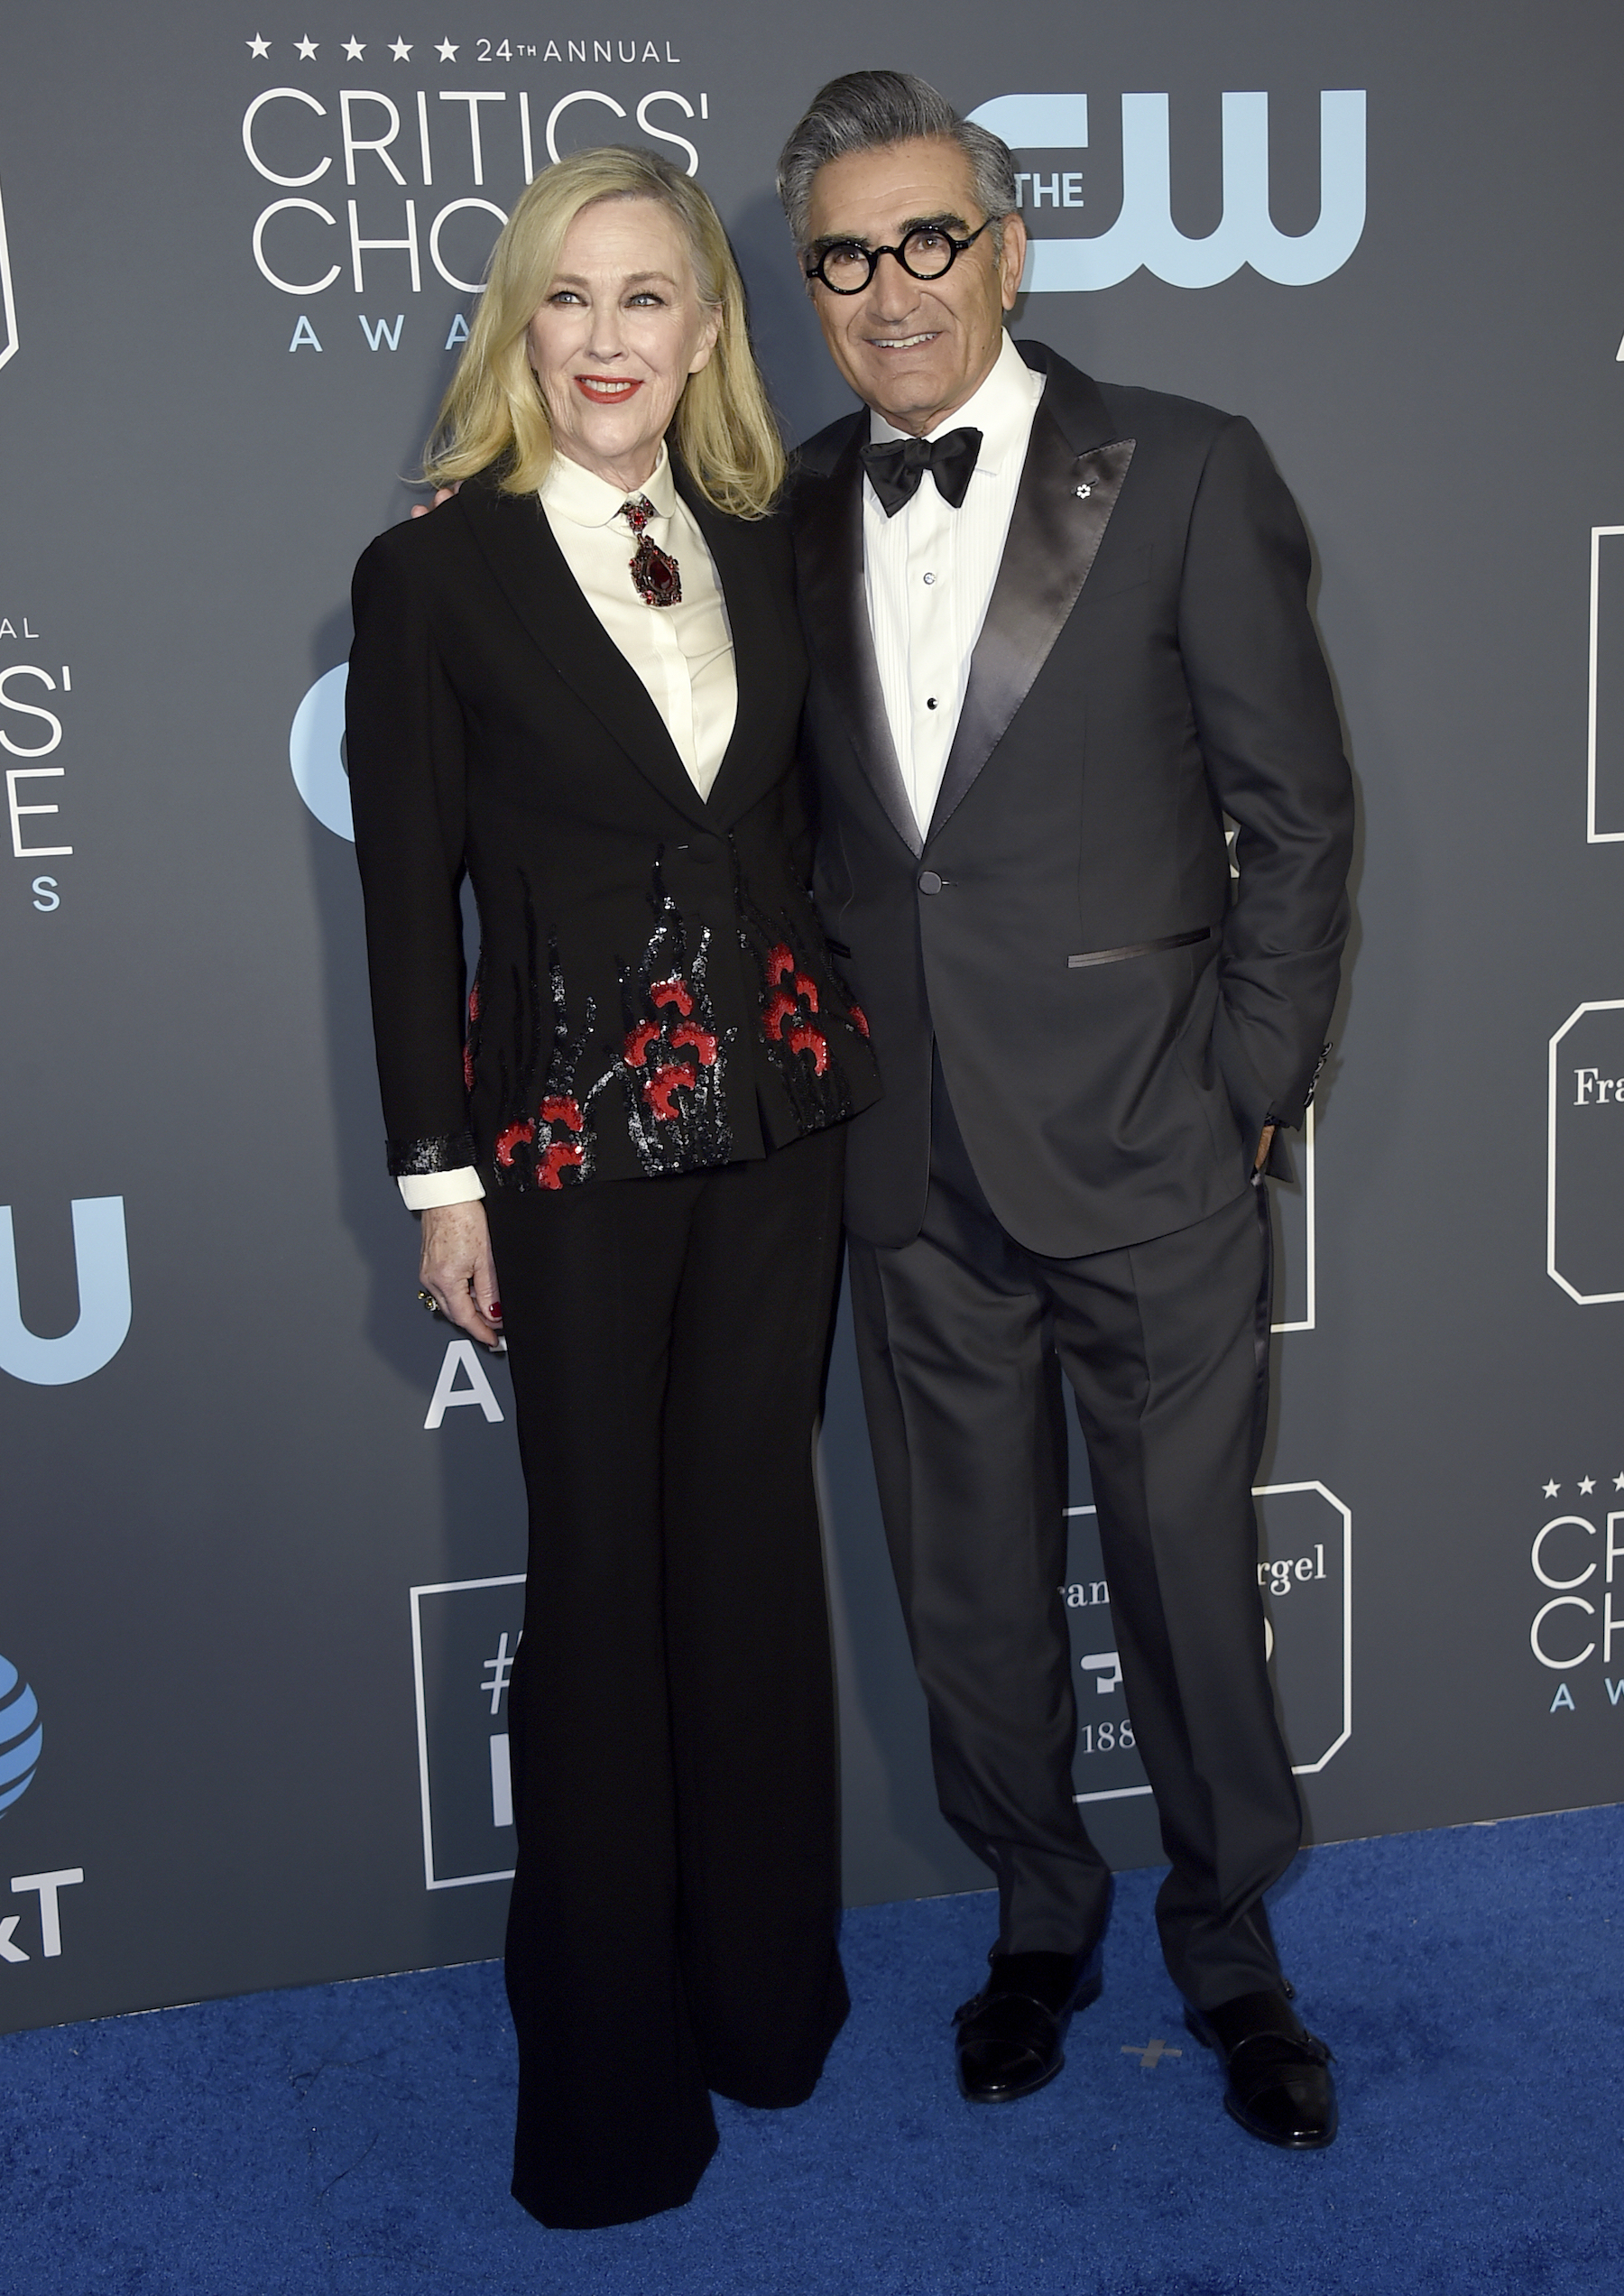 <div class='meta'><div class='origin-logo' data-origin='AP'></div><span class='caption-text' data-credit='Jordan Strauss/Invision/AP'>Catherine O'Hara, left, and Eugene Levy arrive at the 24th annual Critics' Choice Awards on Sunday, Jan. 13, 2019, at the Barker Hangar in Santa Monica, Calif.</span></div>